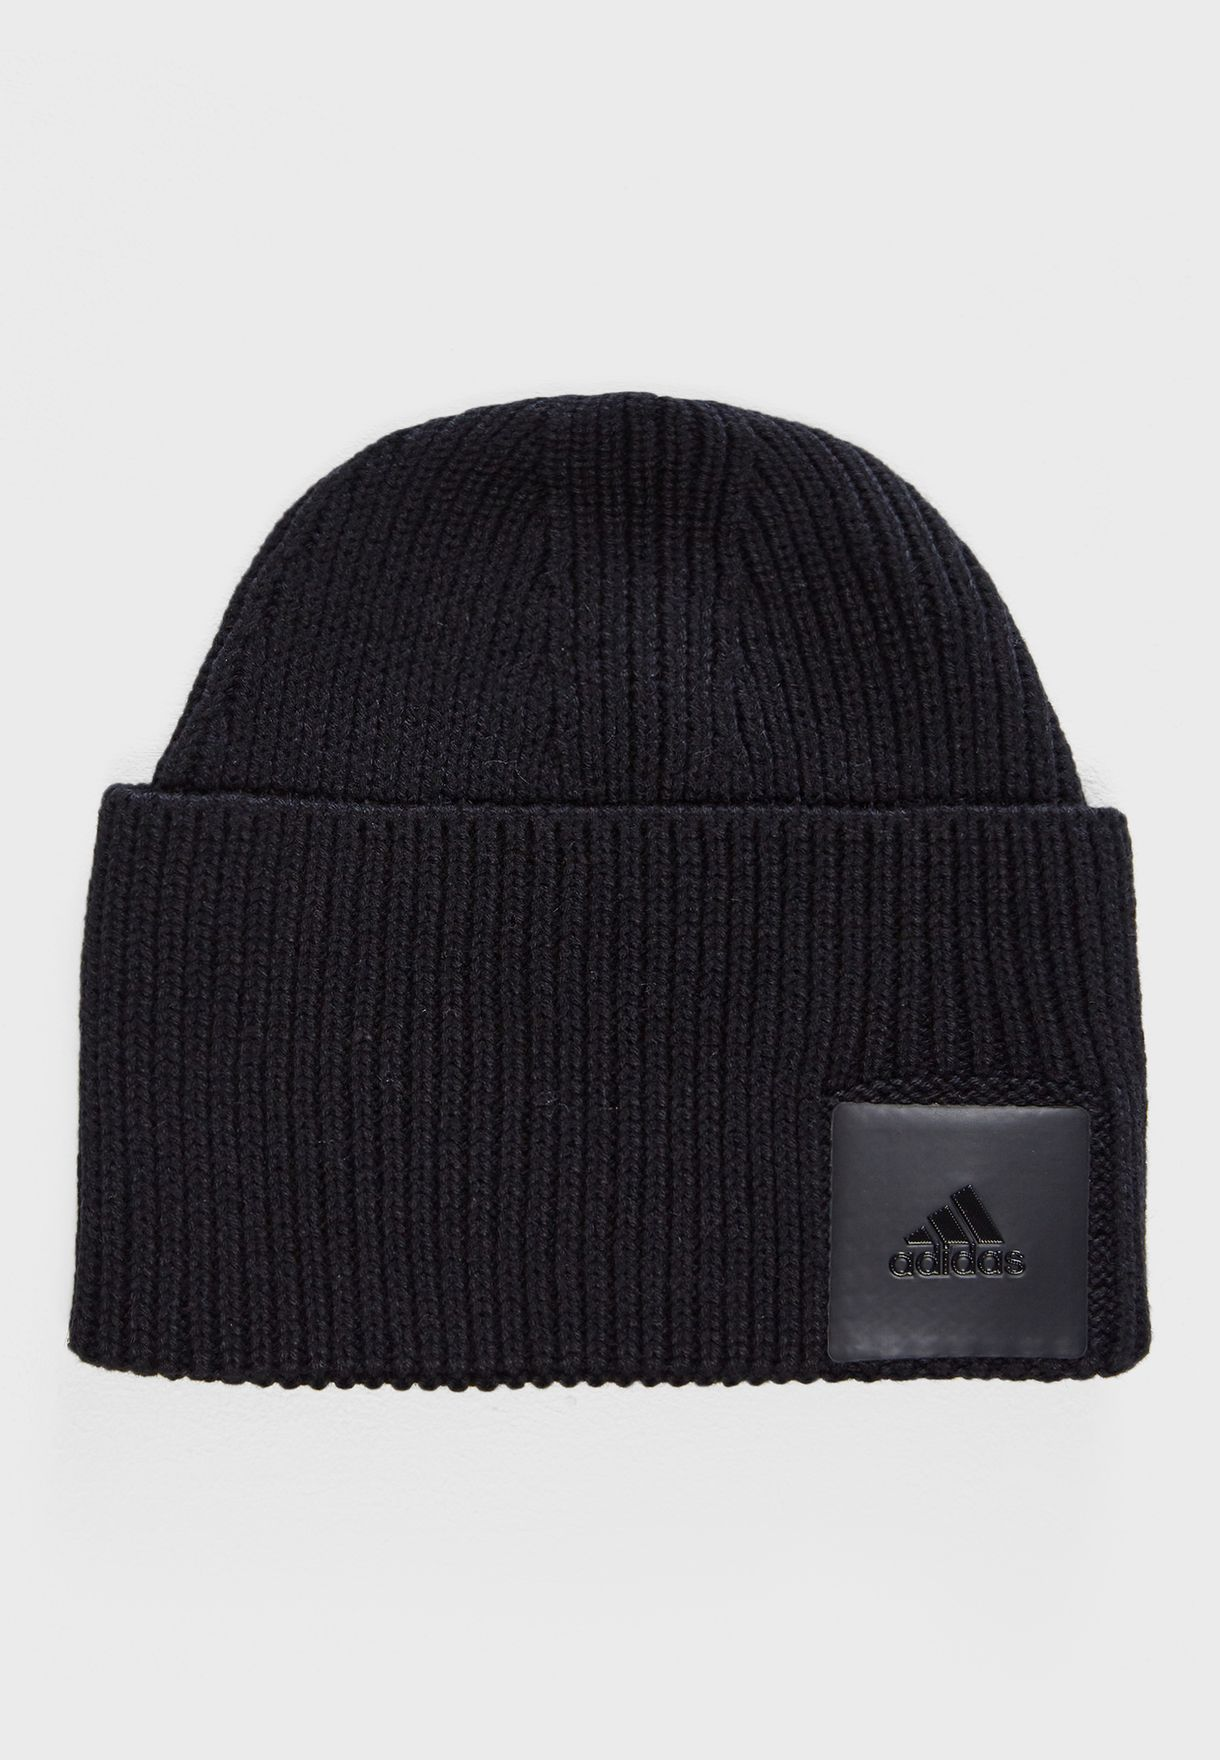 competitive price 6a4ce b8c88 Shop adidas black Z.N.E Beanie CY6017 for Men in UAE - AD476AC90ADH